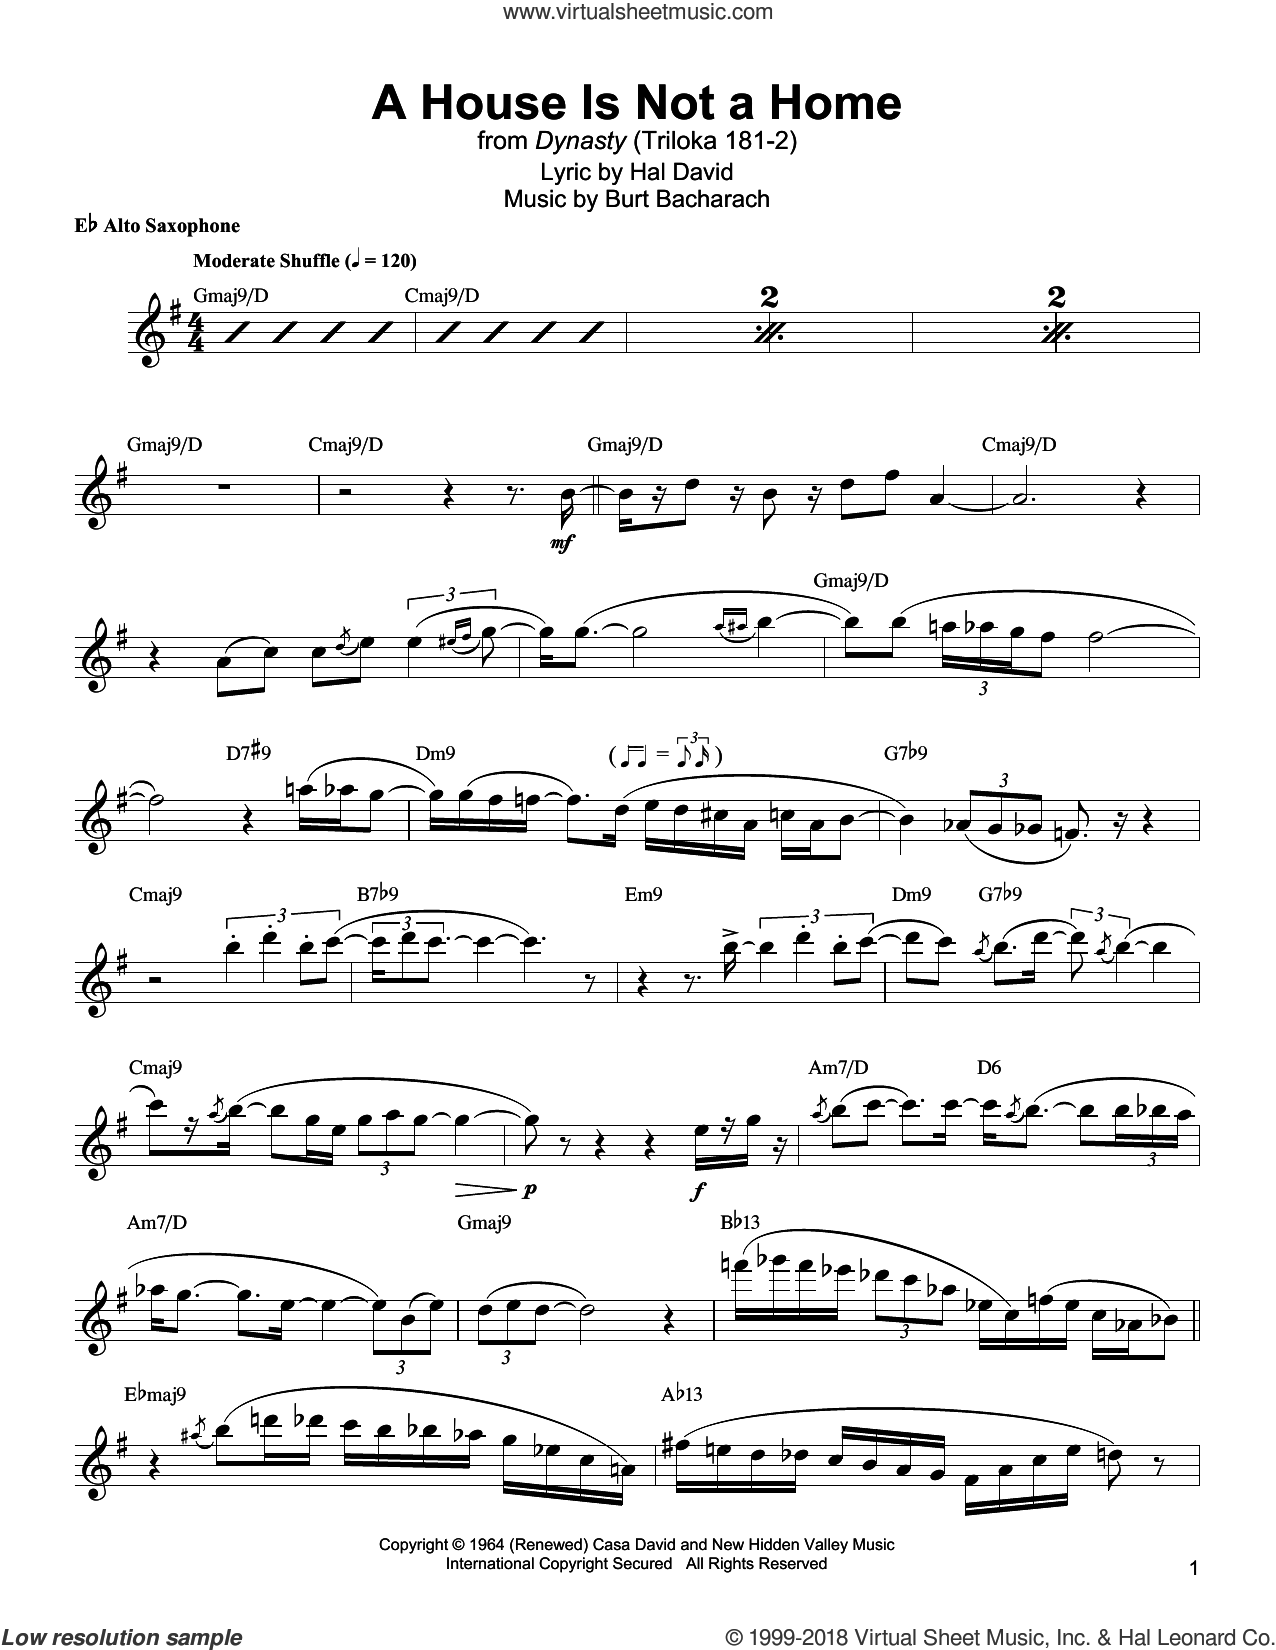 A House Is Not A Home sheet music for alto saxophone (transcription) by Jackie McLean, Burt Bacharach and Hal David, intermediate skill level